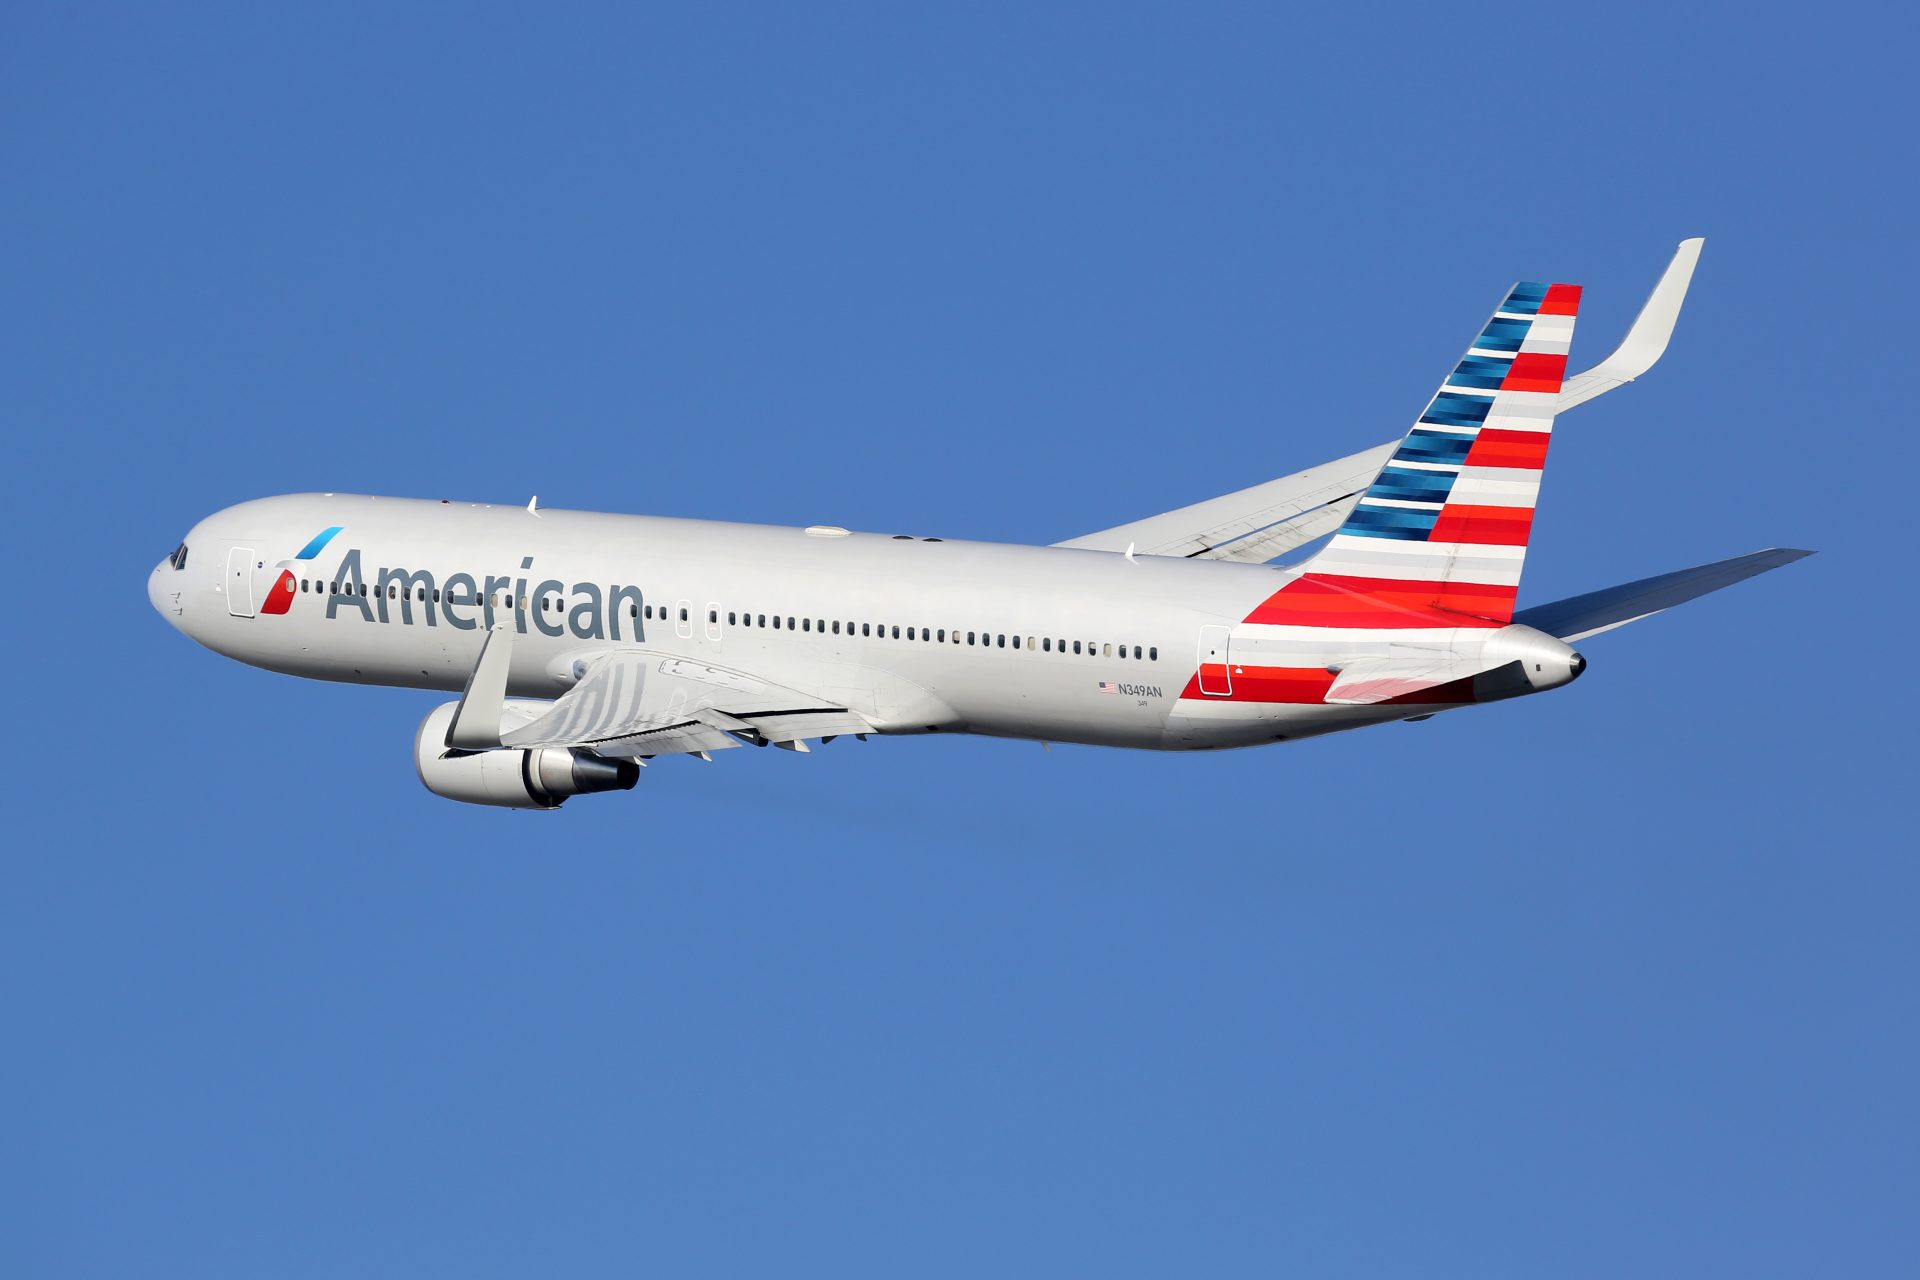 American Airlines to start flights from New York JFK to Tel Aviv.